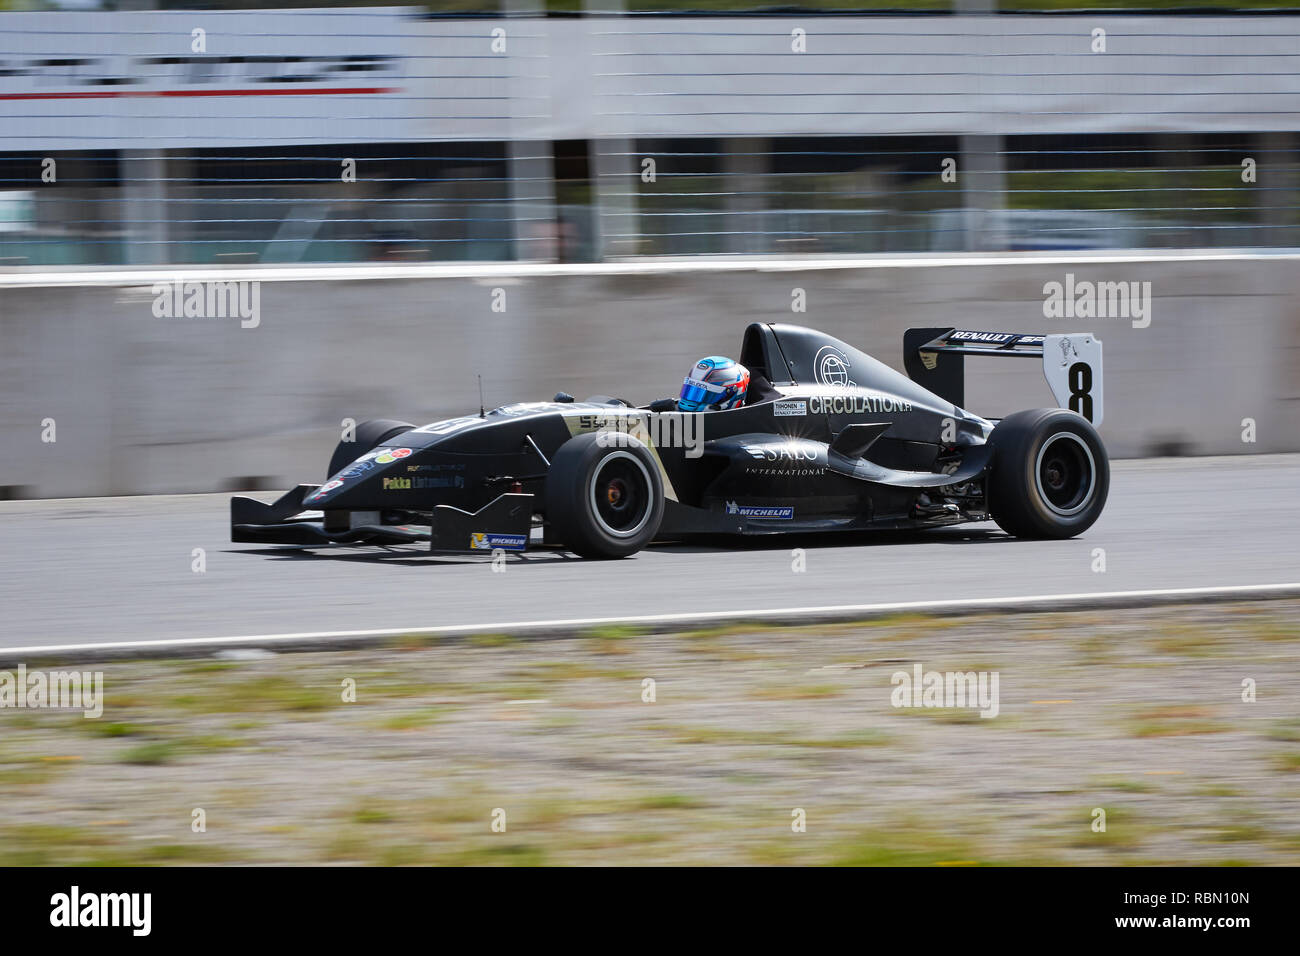 HÄMEENLINNA, FINLAND – APRIL 11 2016: A formula one racecar at high speed on racetrack on open practise day at Ahvenisto Race Circuit in Finland. This - Stock Image